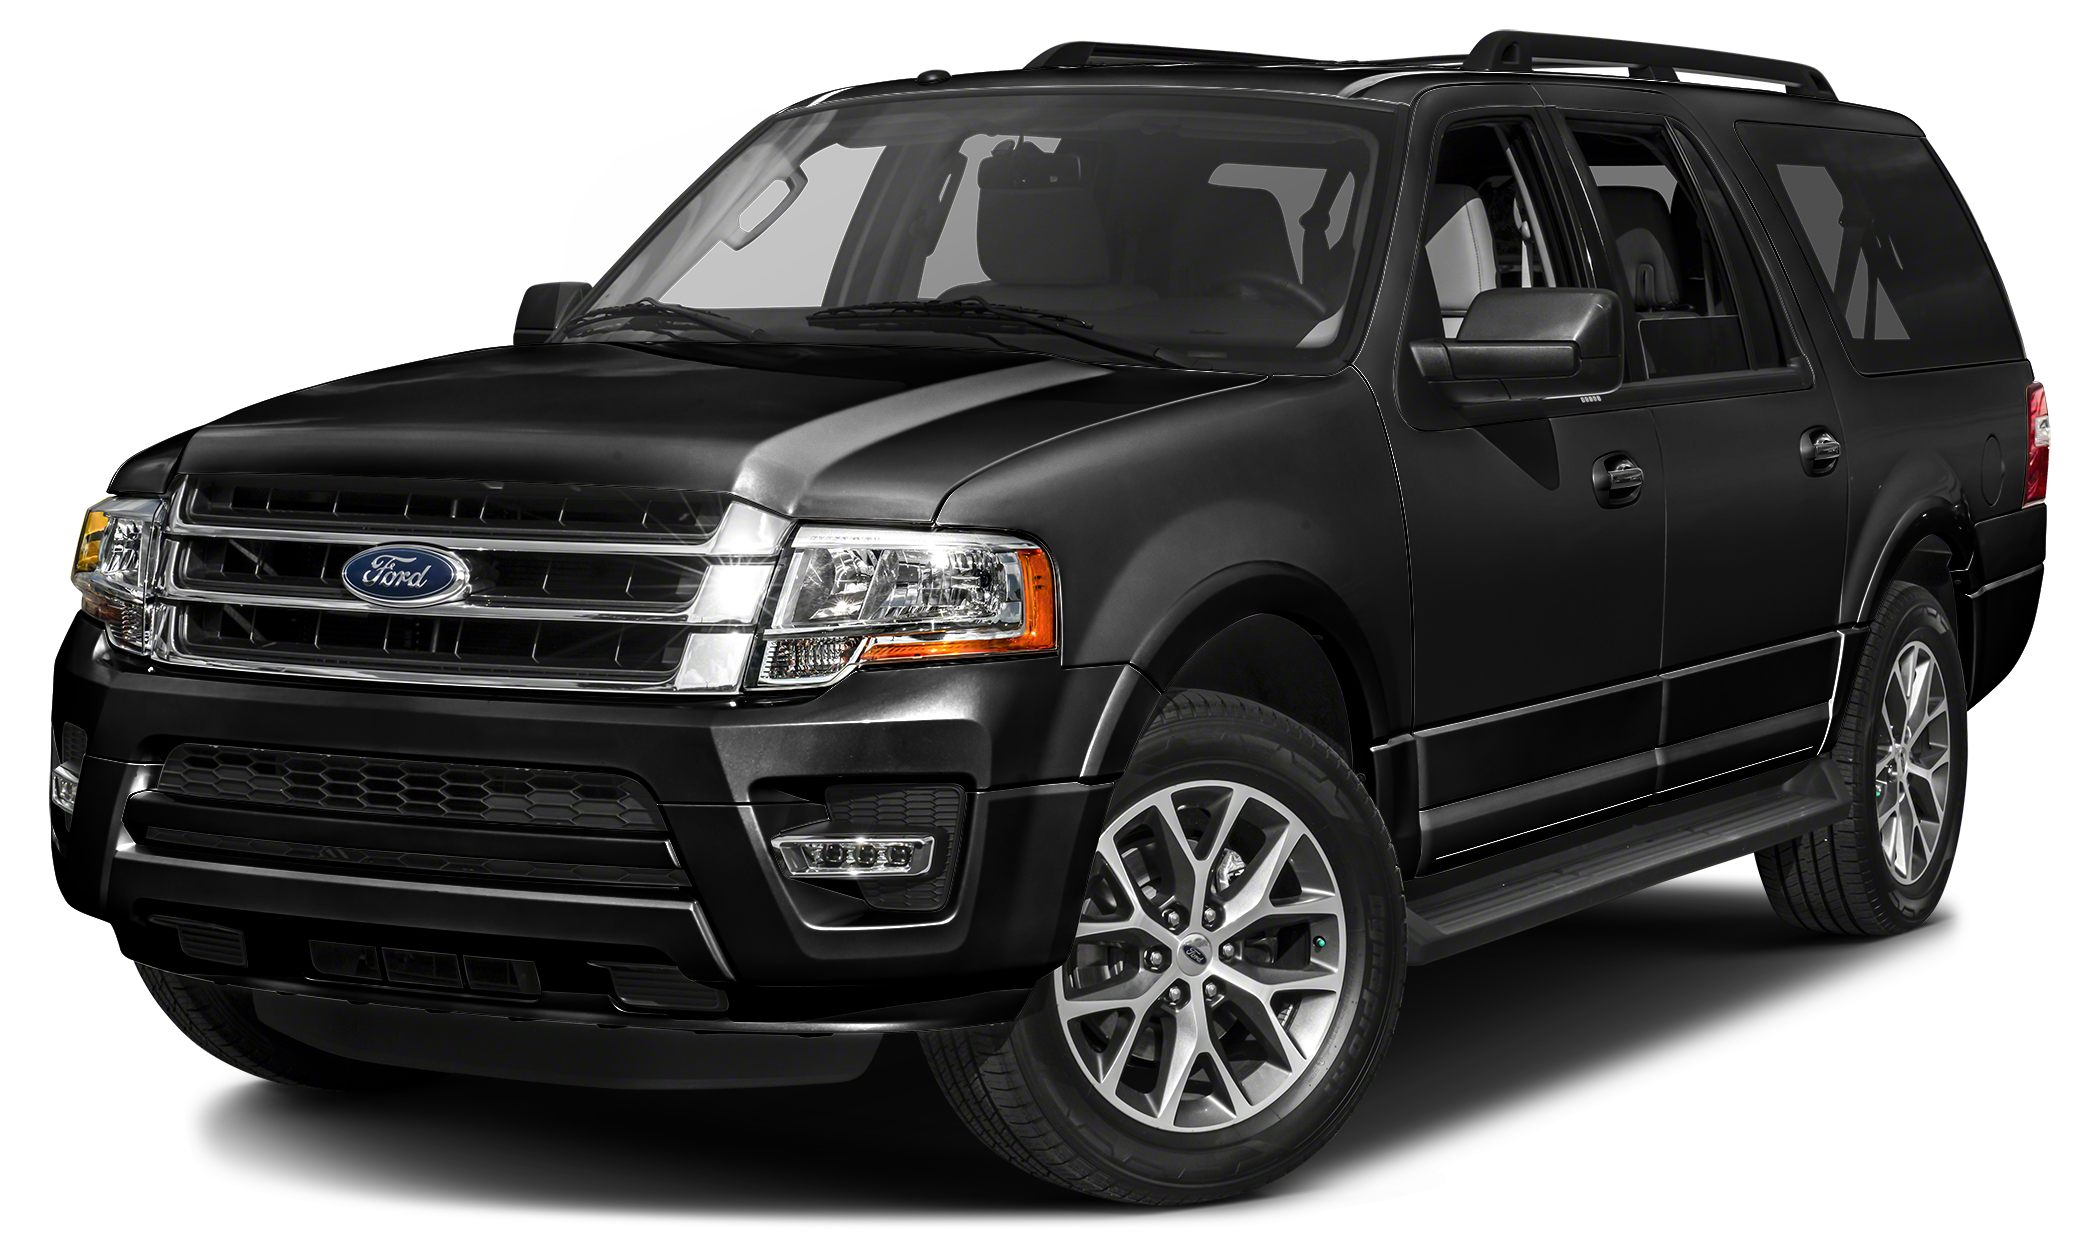 2015 Ford Expedition EL XLT Redesigned for 2015 welcome in the all new Ford Expedition A new aggr